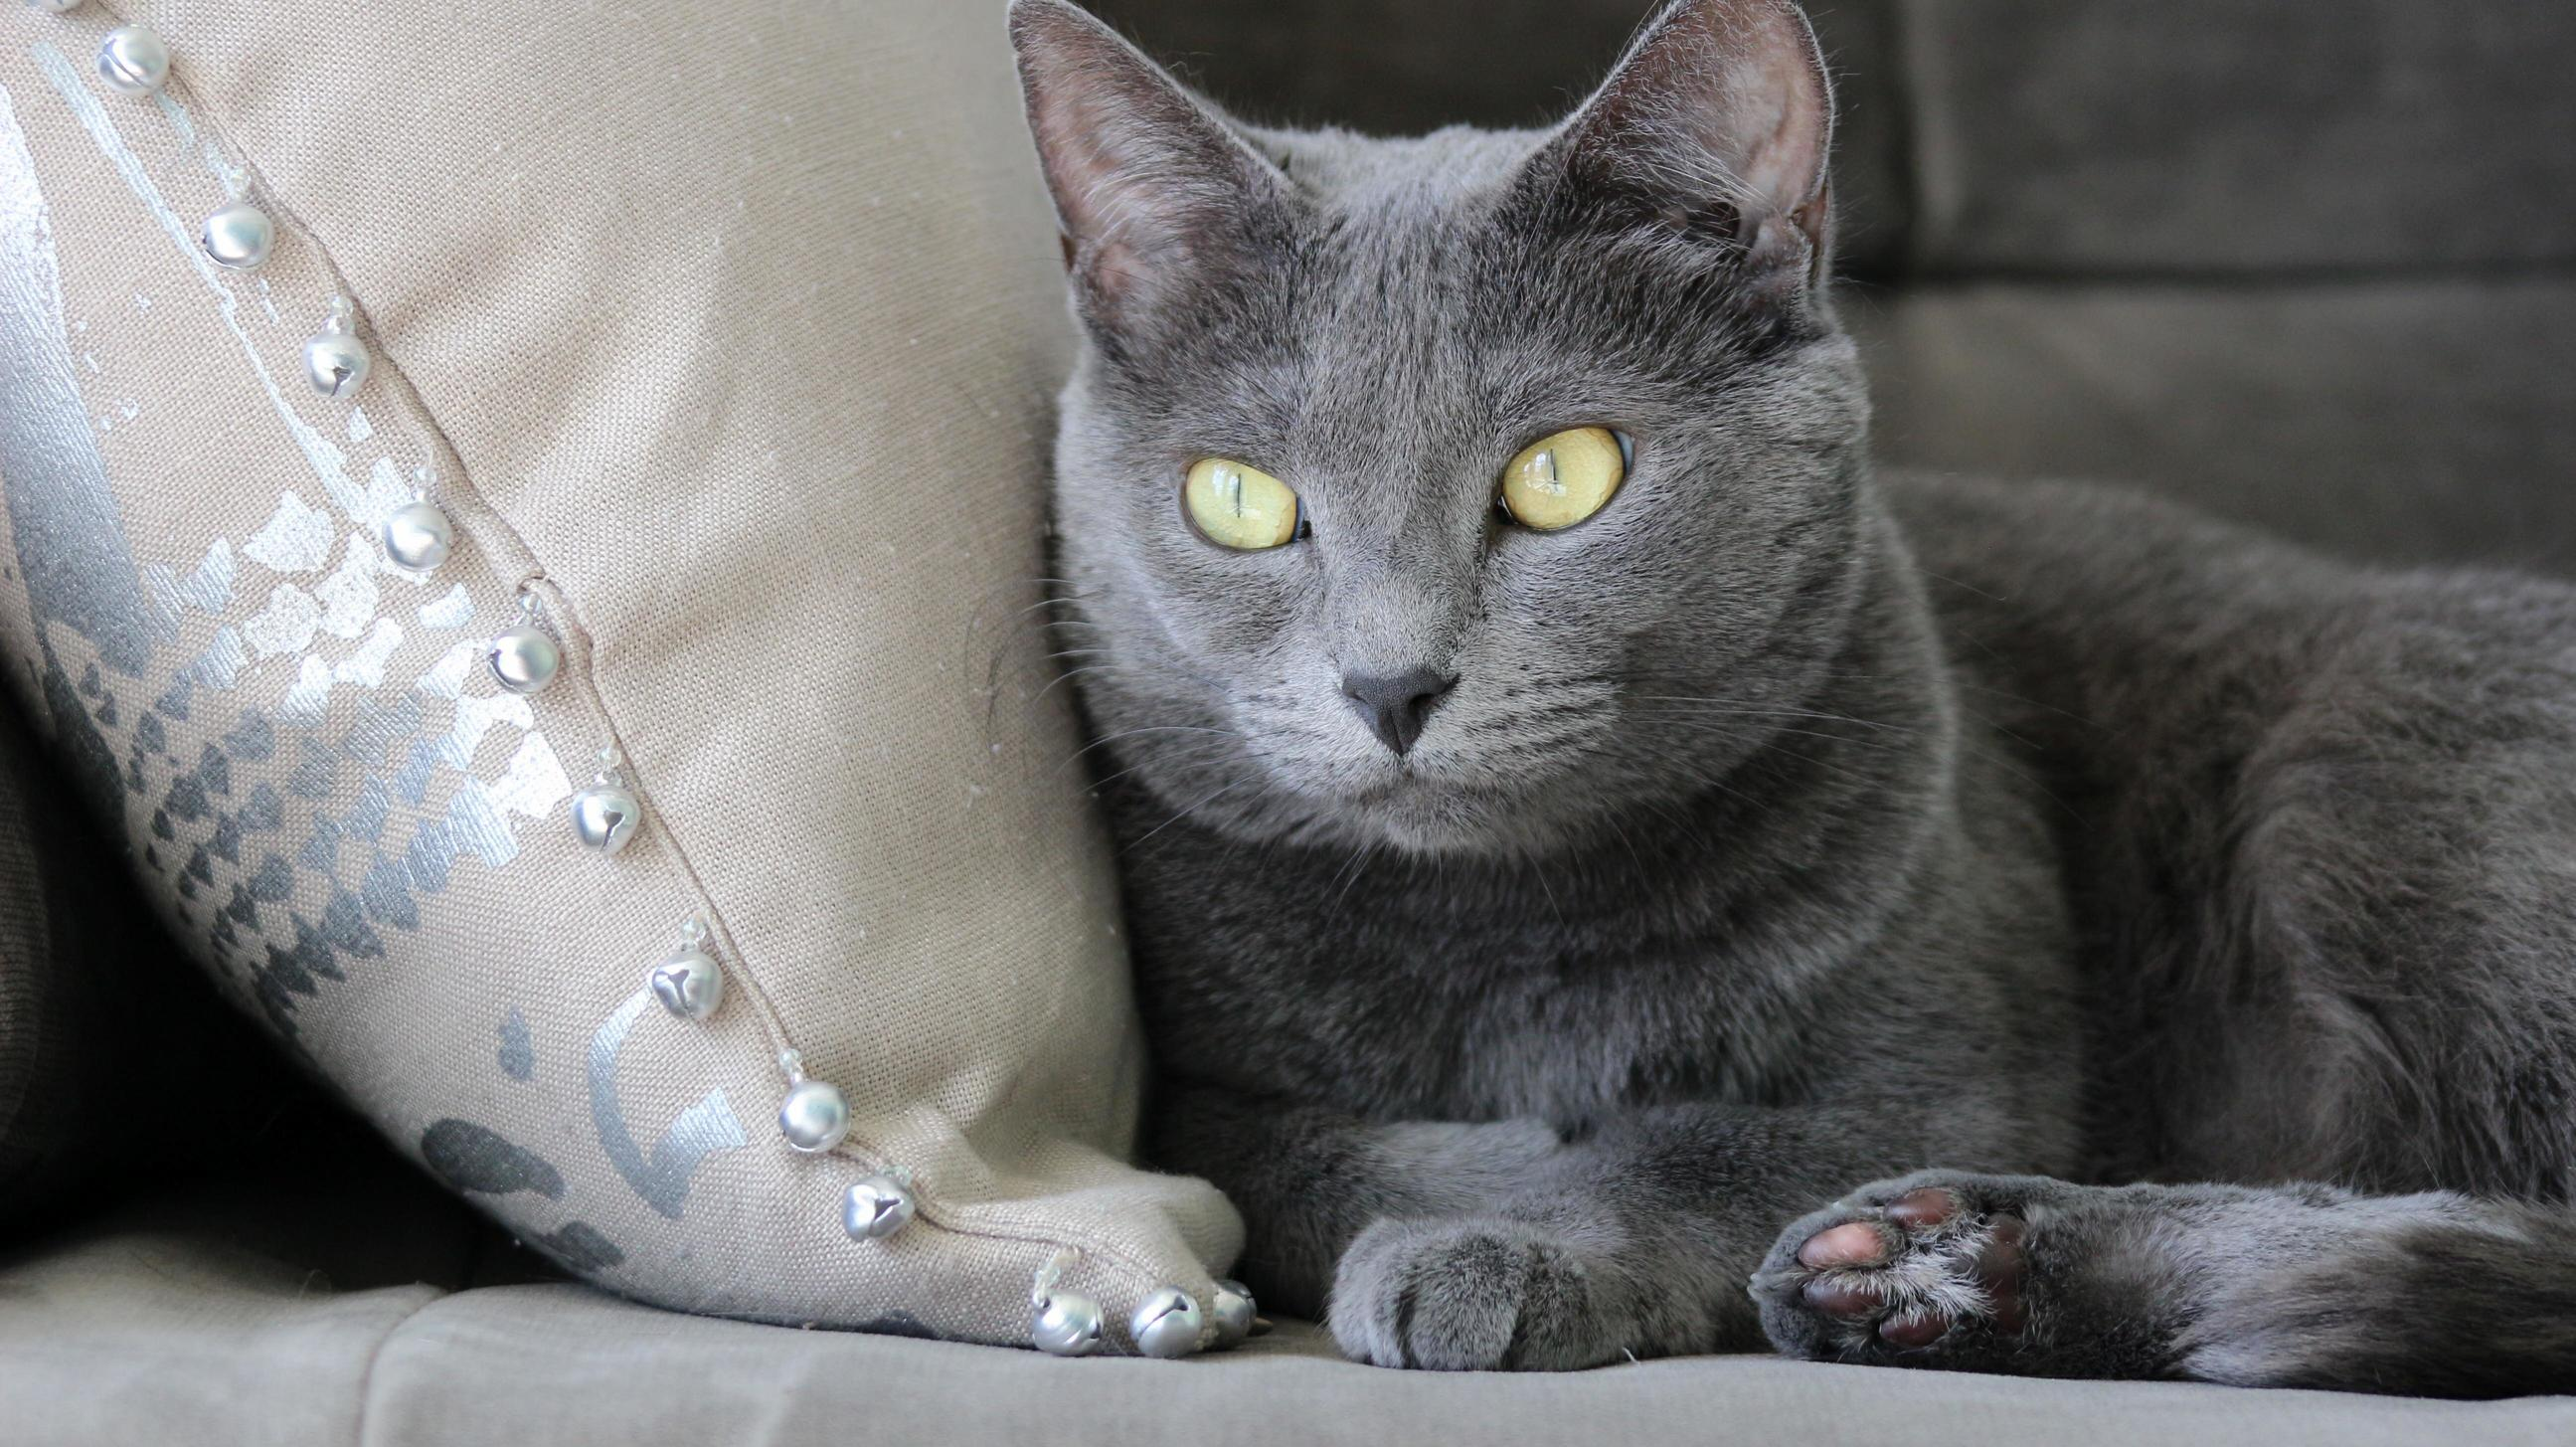 If she only knew we accessories the home around her. all hail feline queen.